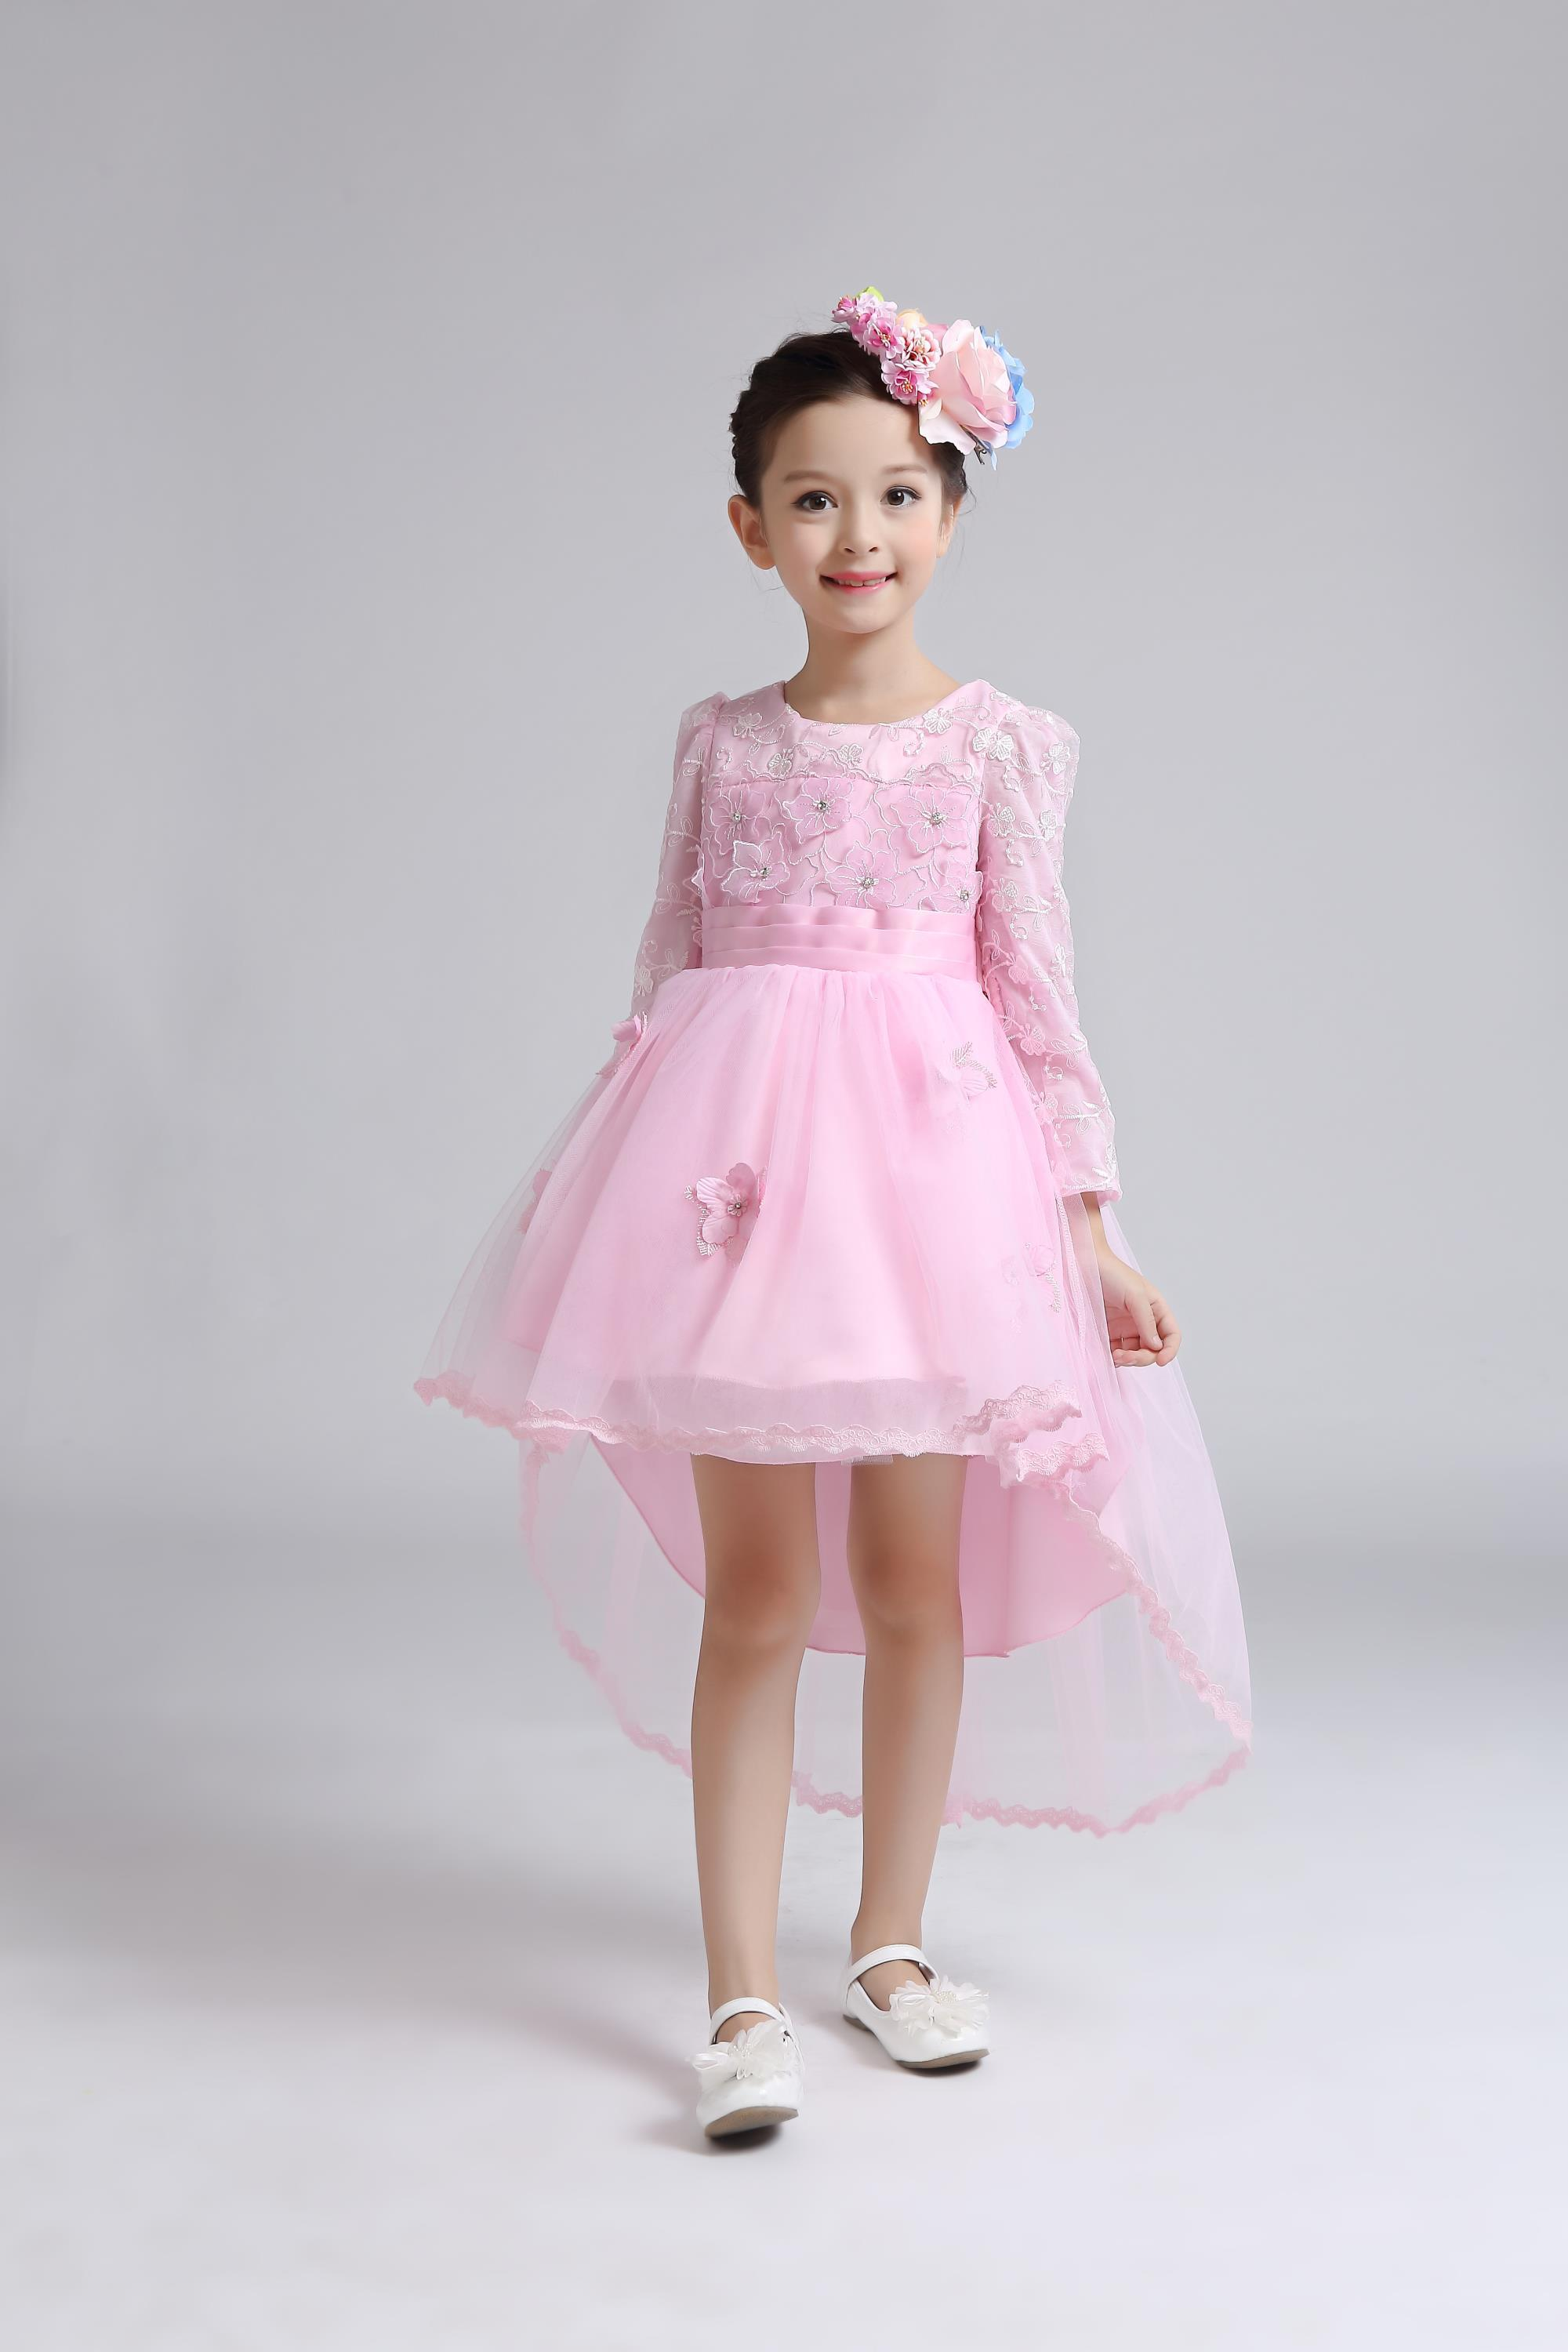 Long Sleeve Flower Girl Dresses Vintage Tulle Girl Birthday Party Princess Dresses Knee-Length Mother Daughter Dresses For Girls